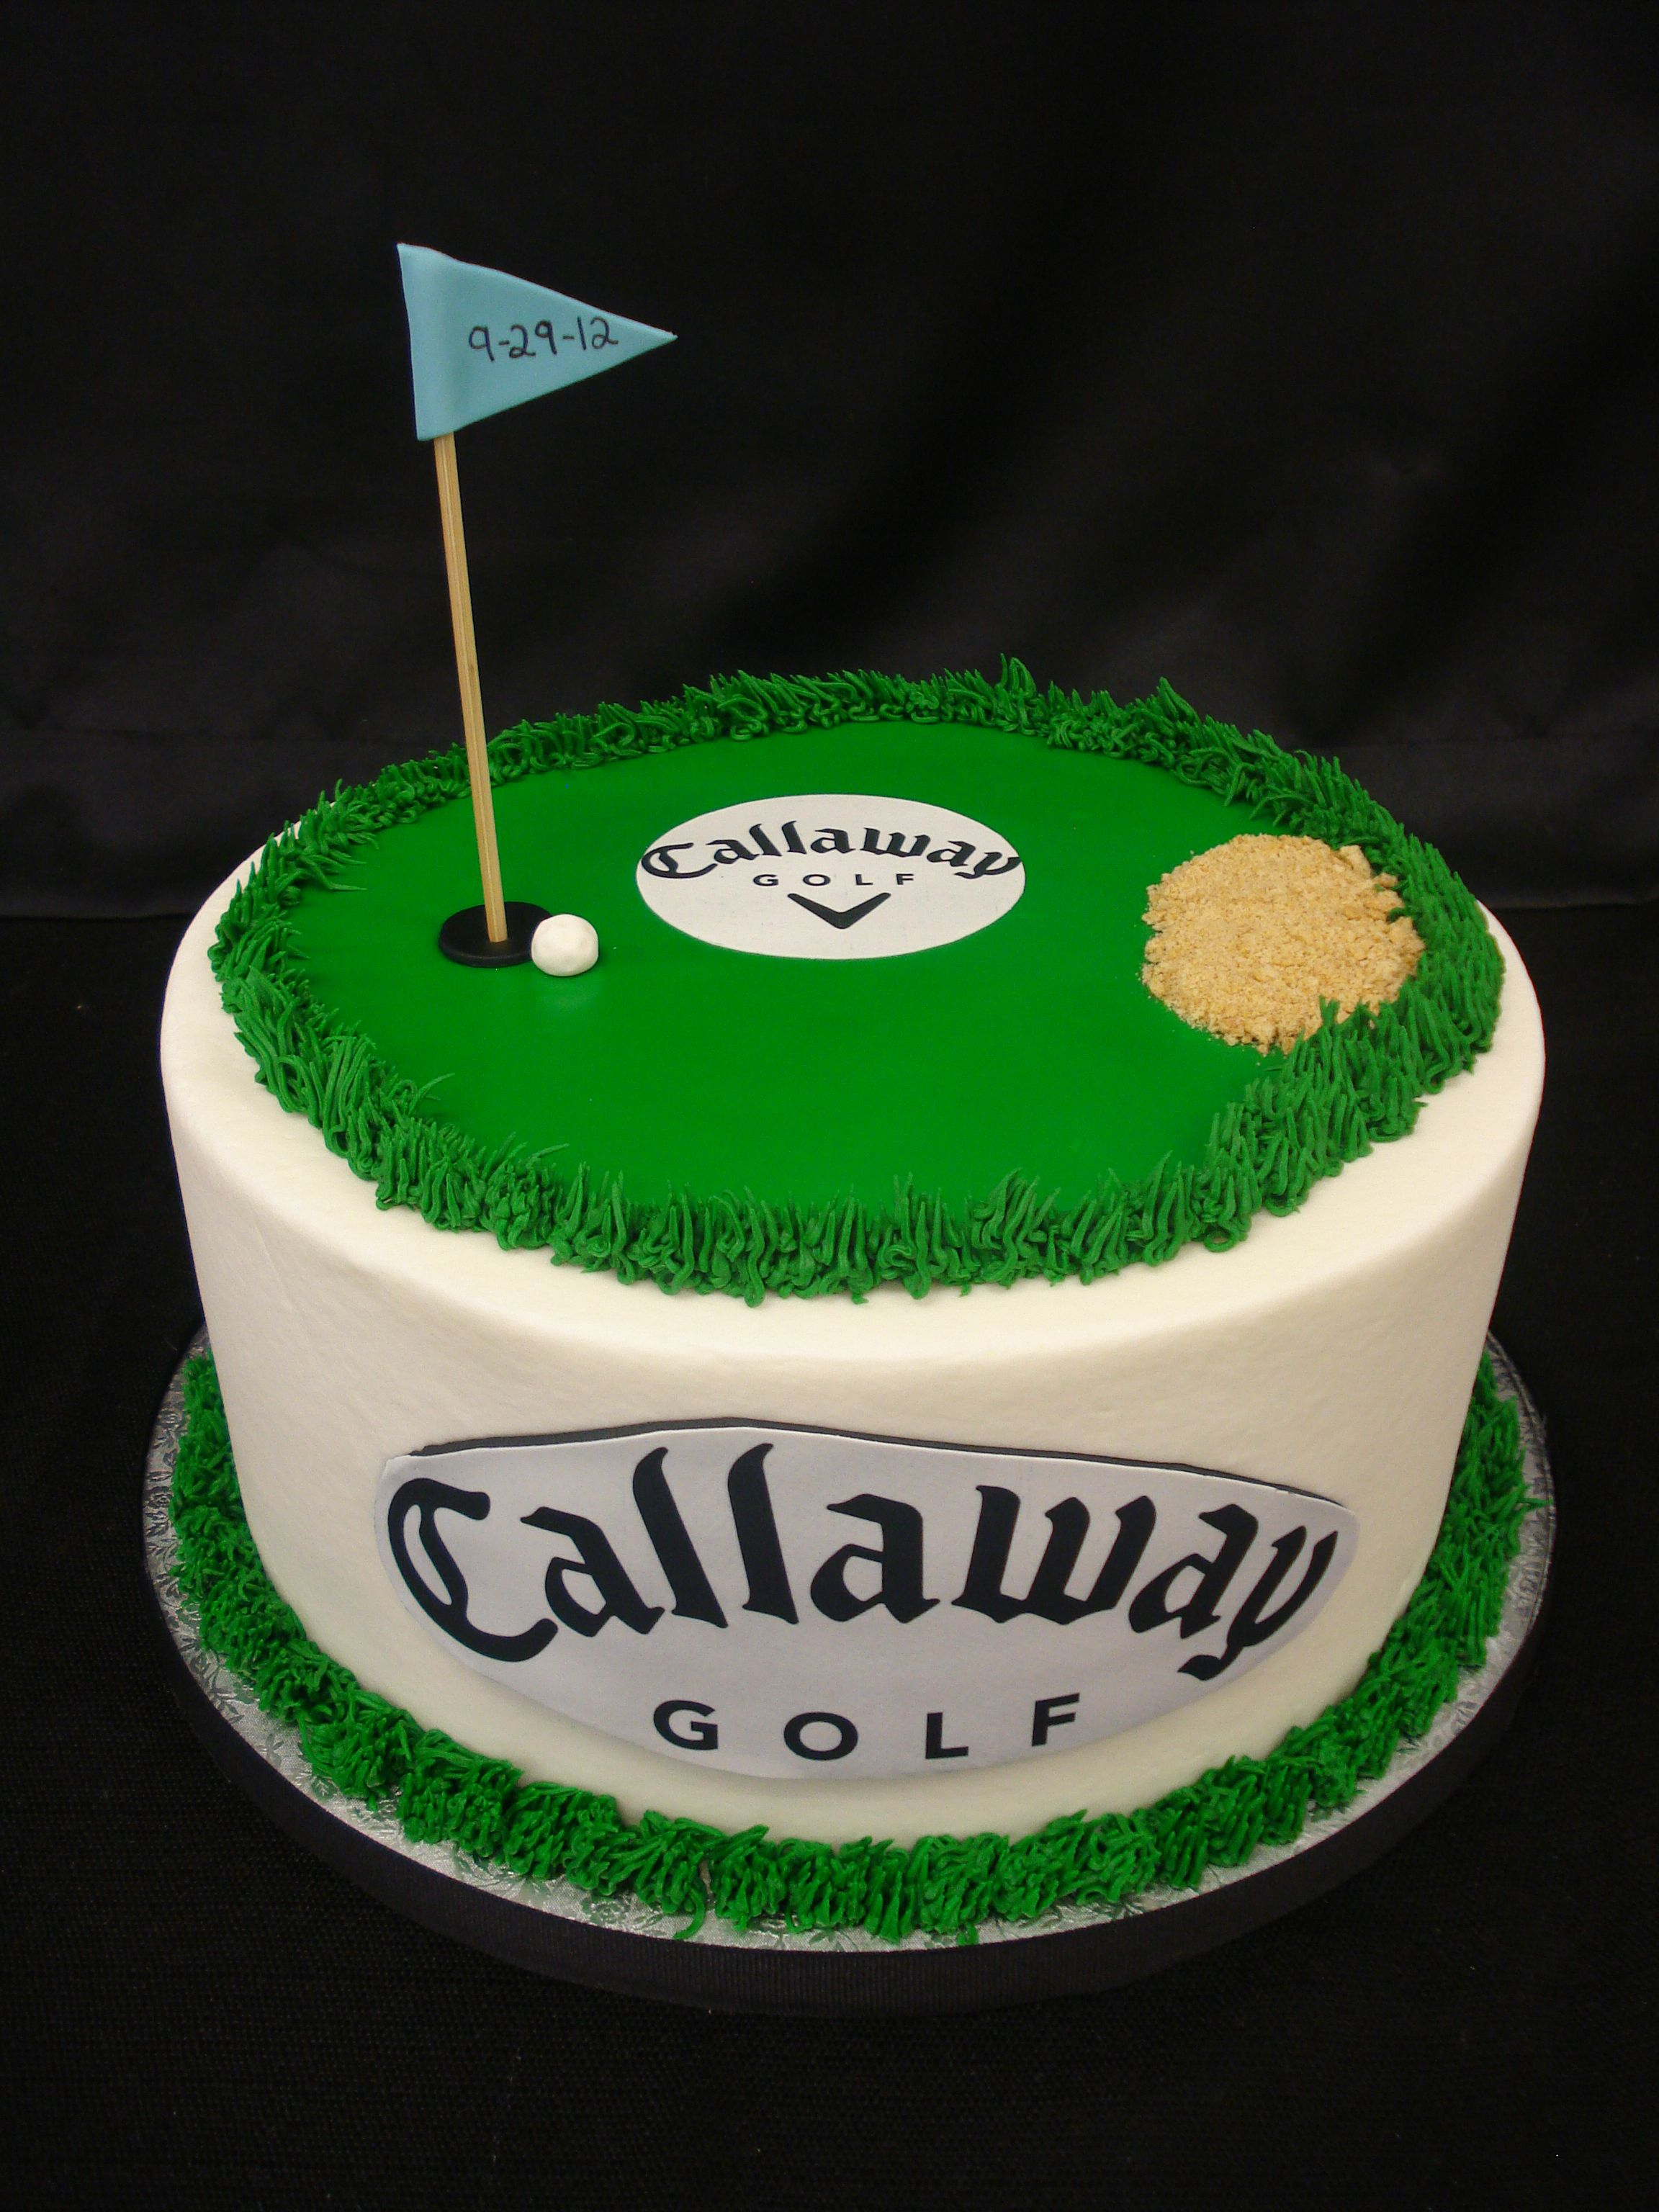 Sensational Callaway Golf Coure Inspired Creative Cake By Party Flavors Custom Personalised Birthday Cards Beptaeletsinfo